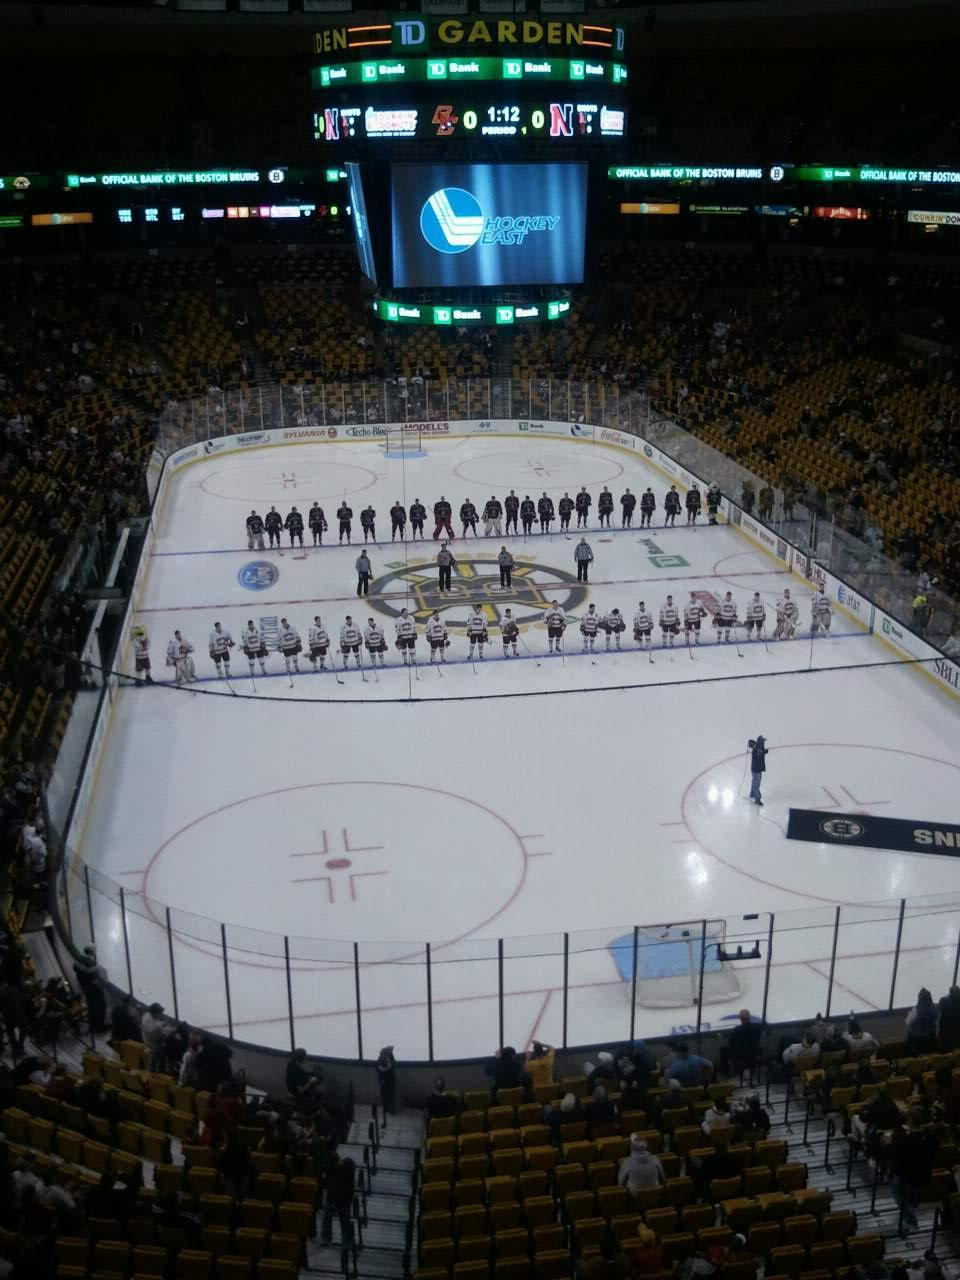 Td Garden Section 324 Seat Views Seatscore Rateyourseats